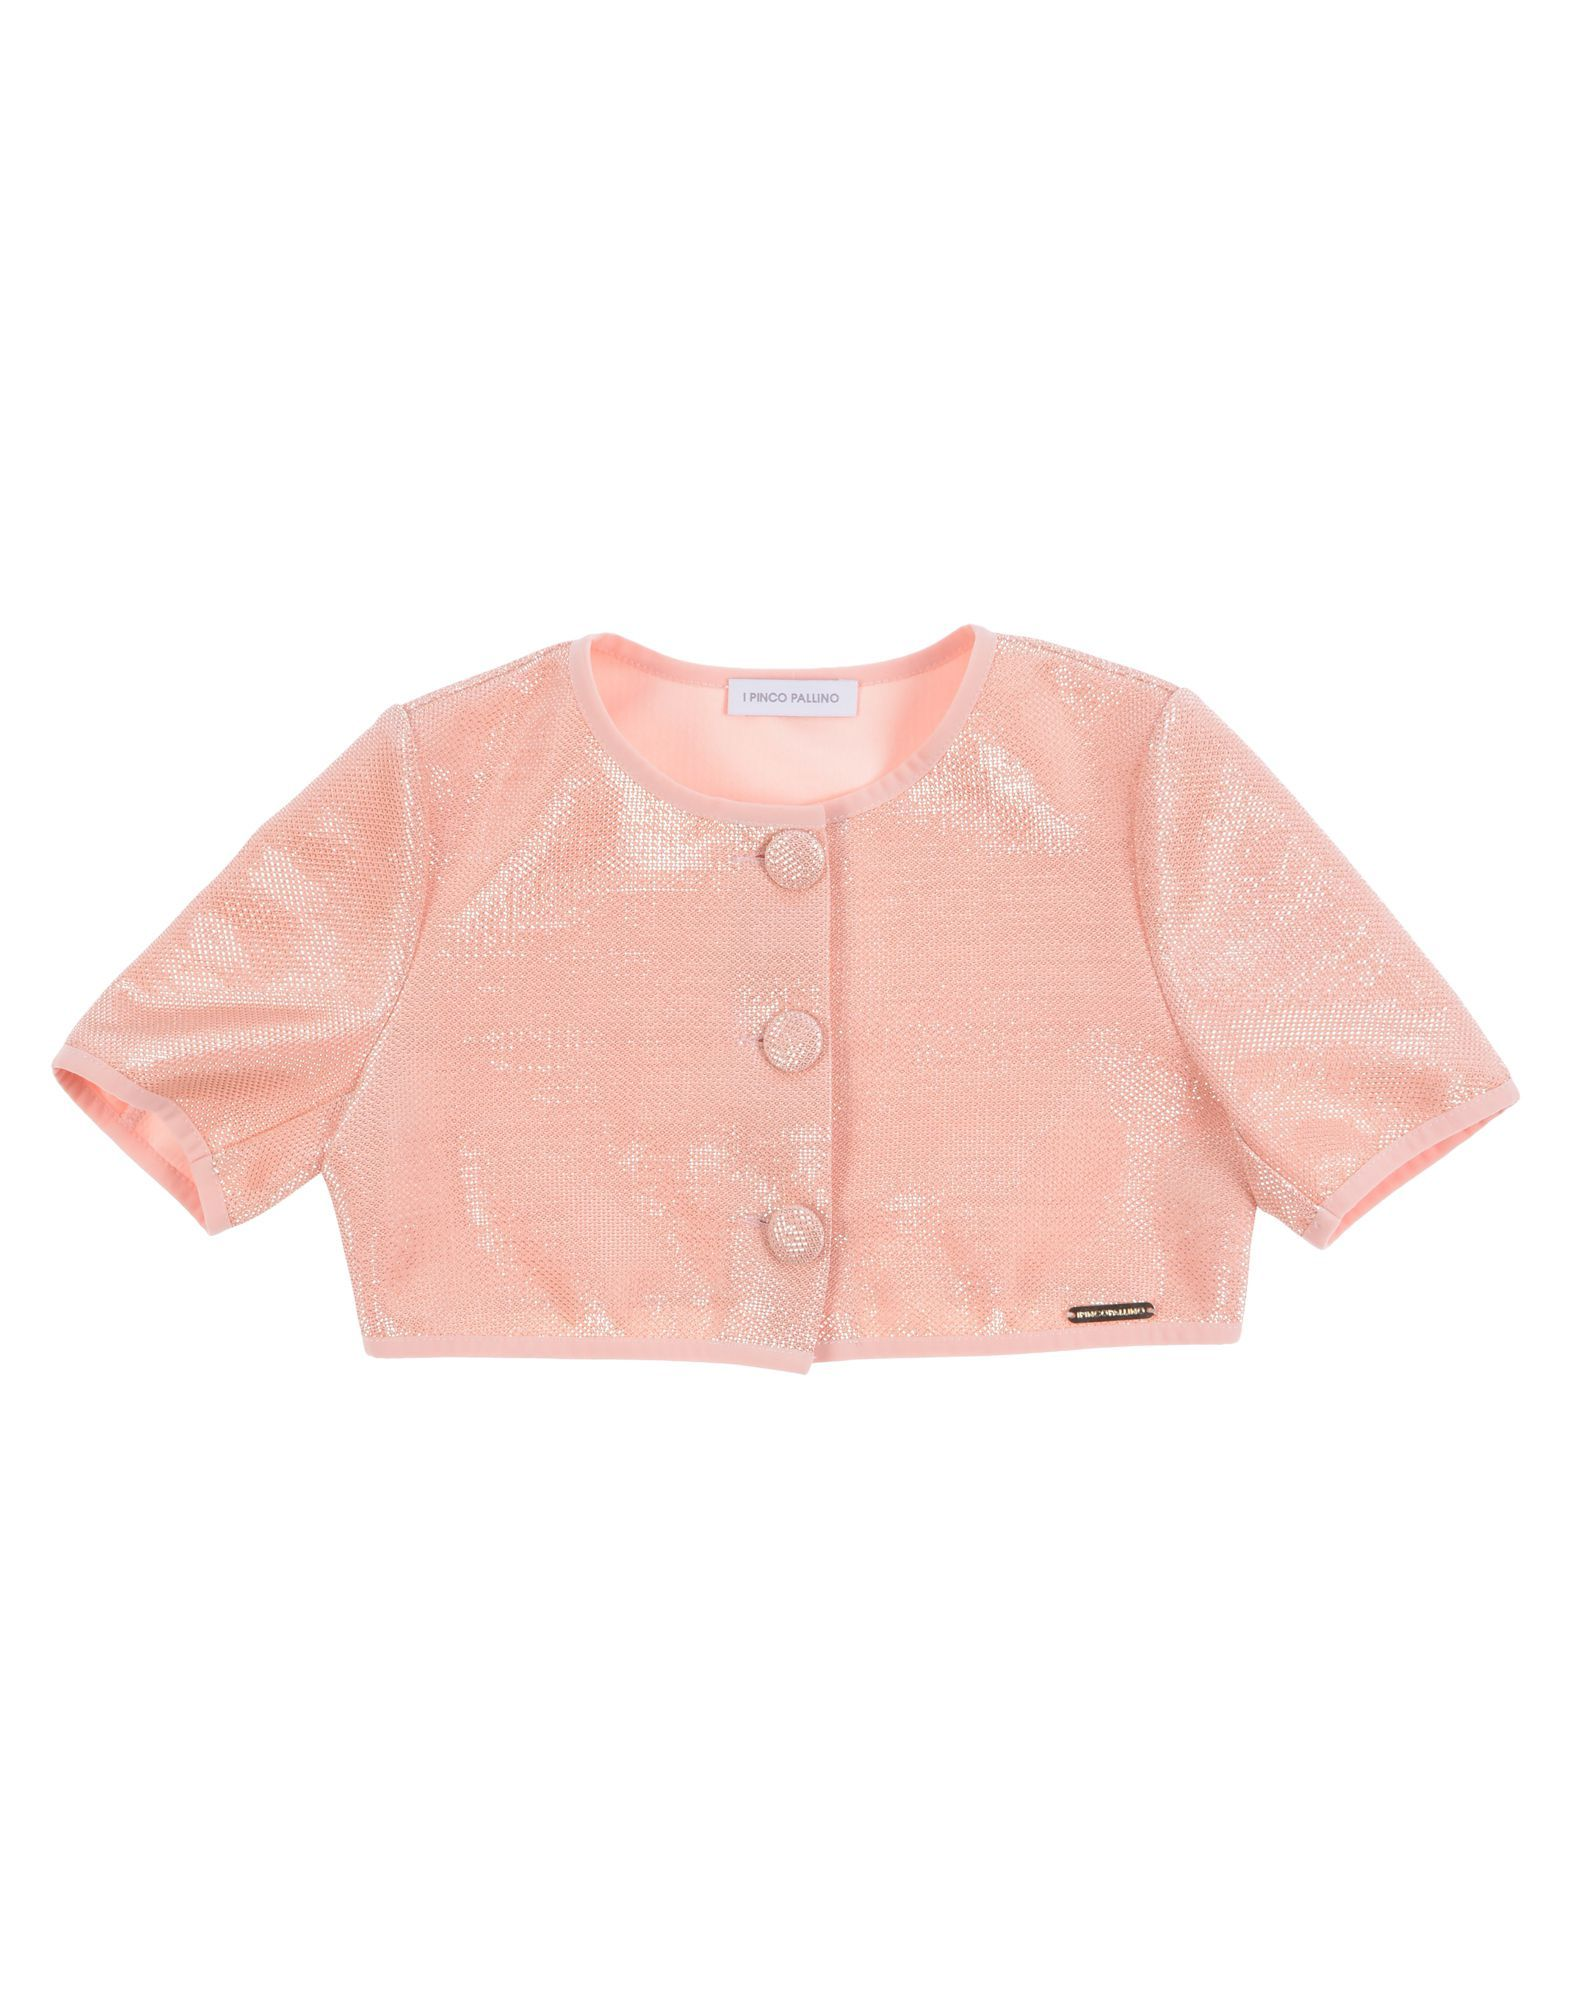 SUITS AND JACKETS I Pinco Pallino Pastel pink Girl Polyester